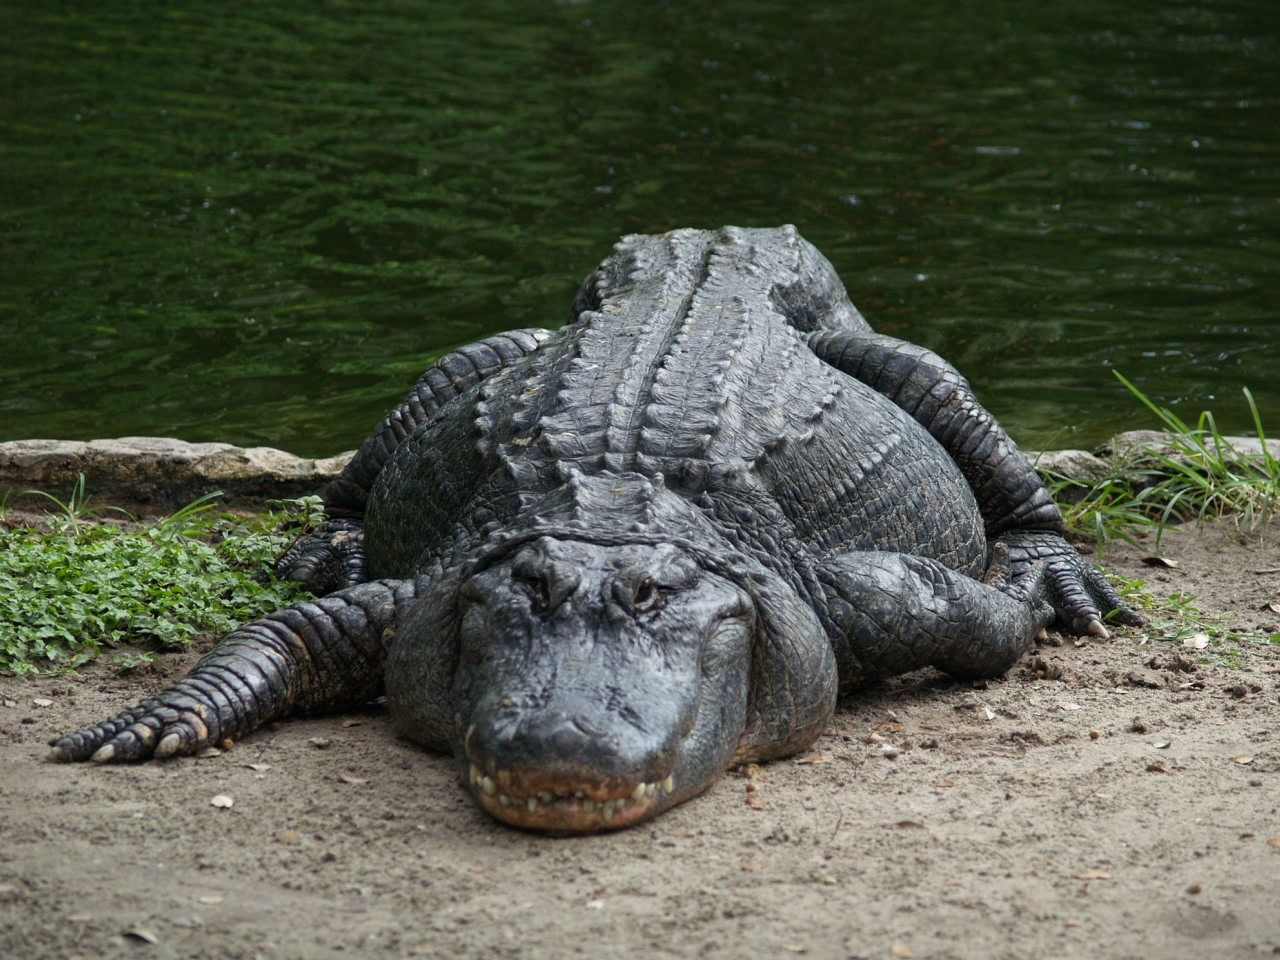 I love alligators too. they're the greatest Animals